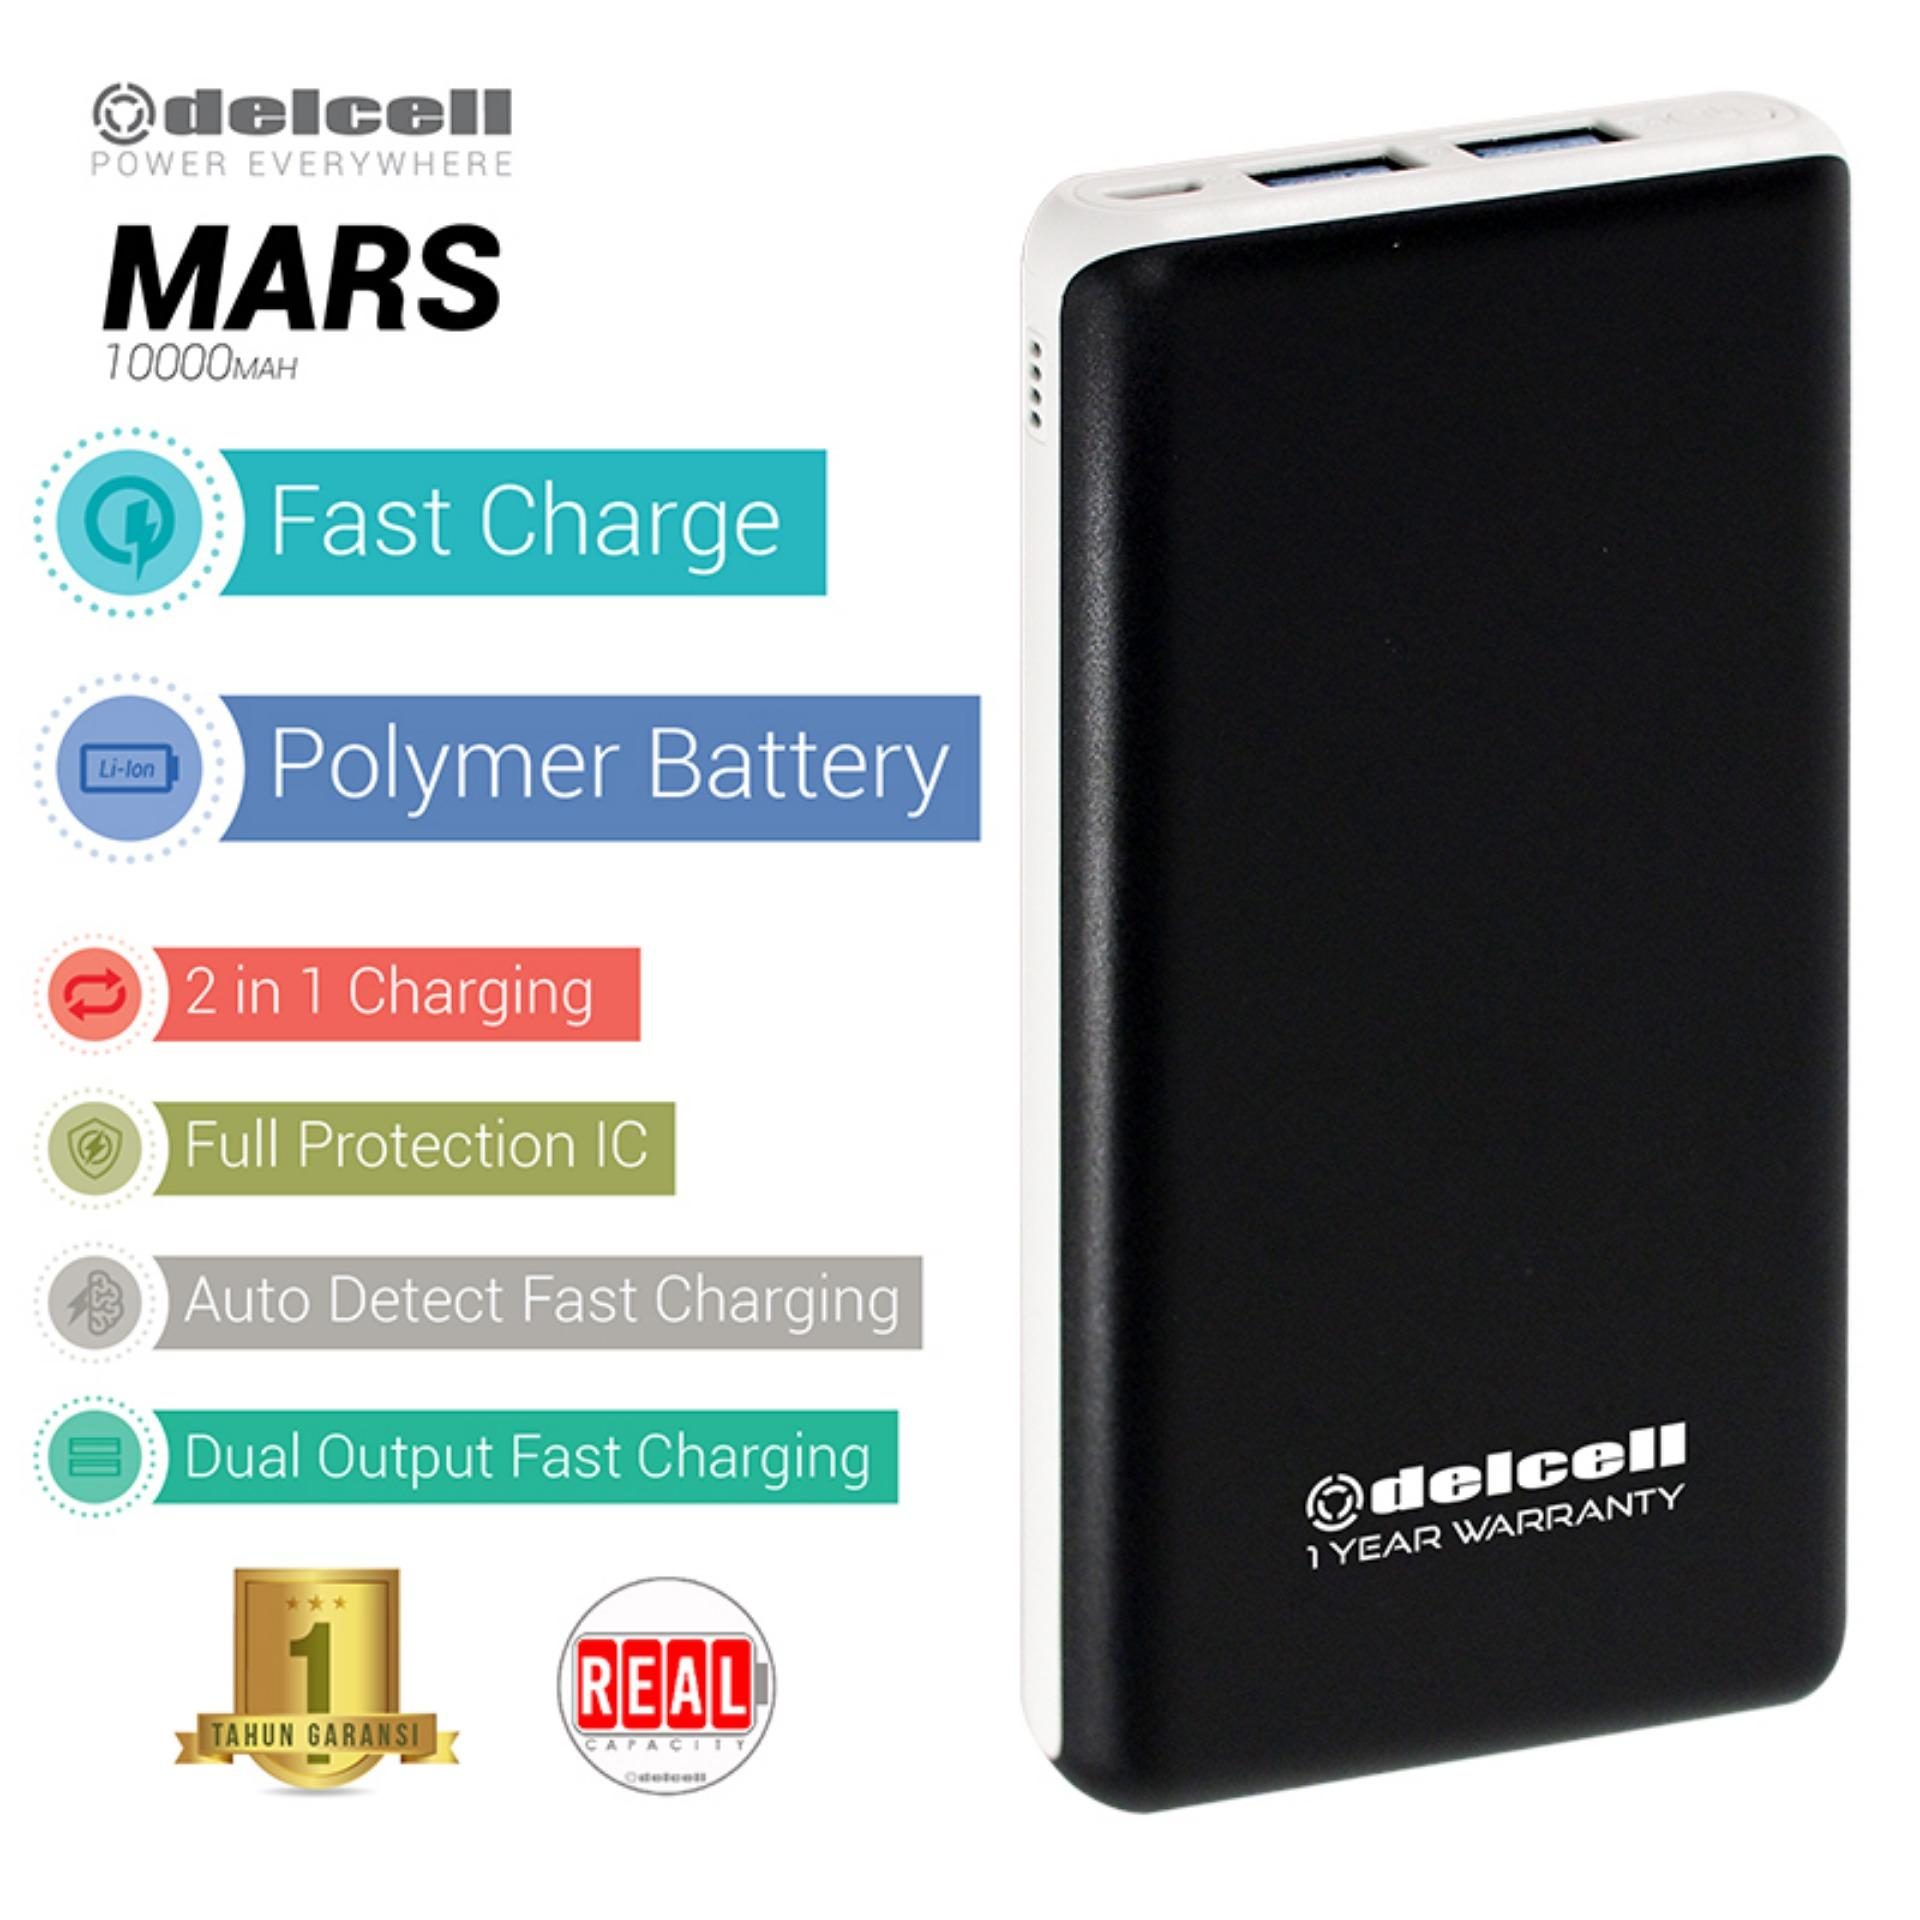 Delcell 10000mAh Powerbank MARS Real Capacity Fast Charging Slim Powerbank Polymer Battery Dual Output Garansi Resmi